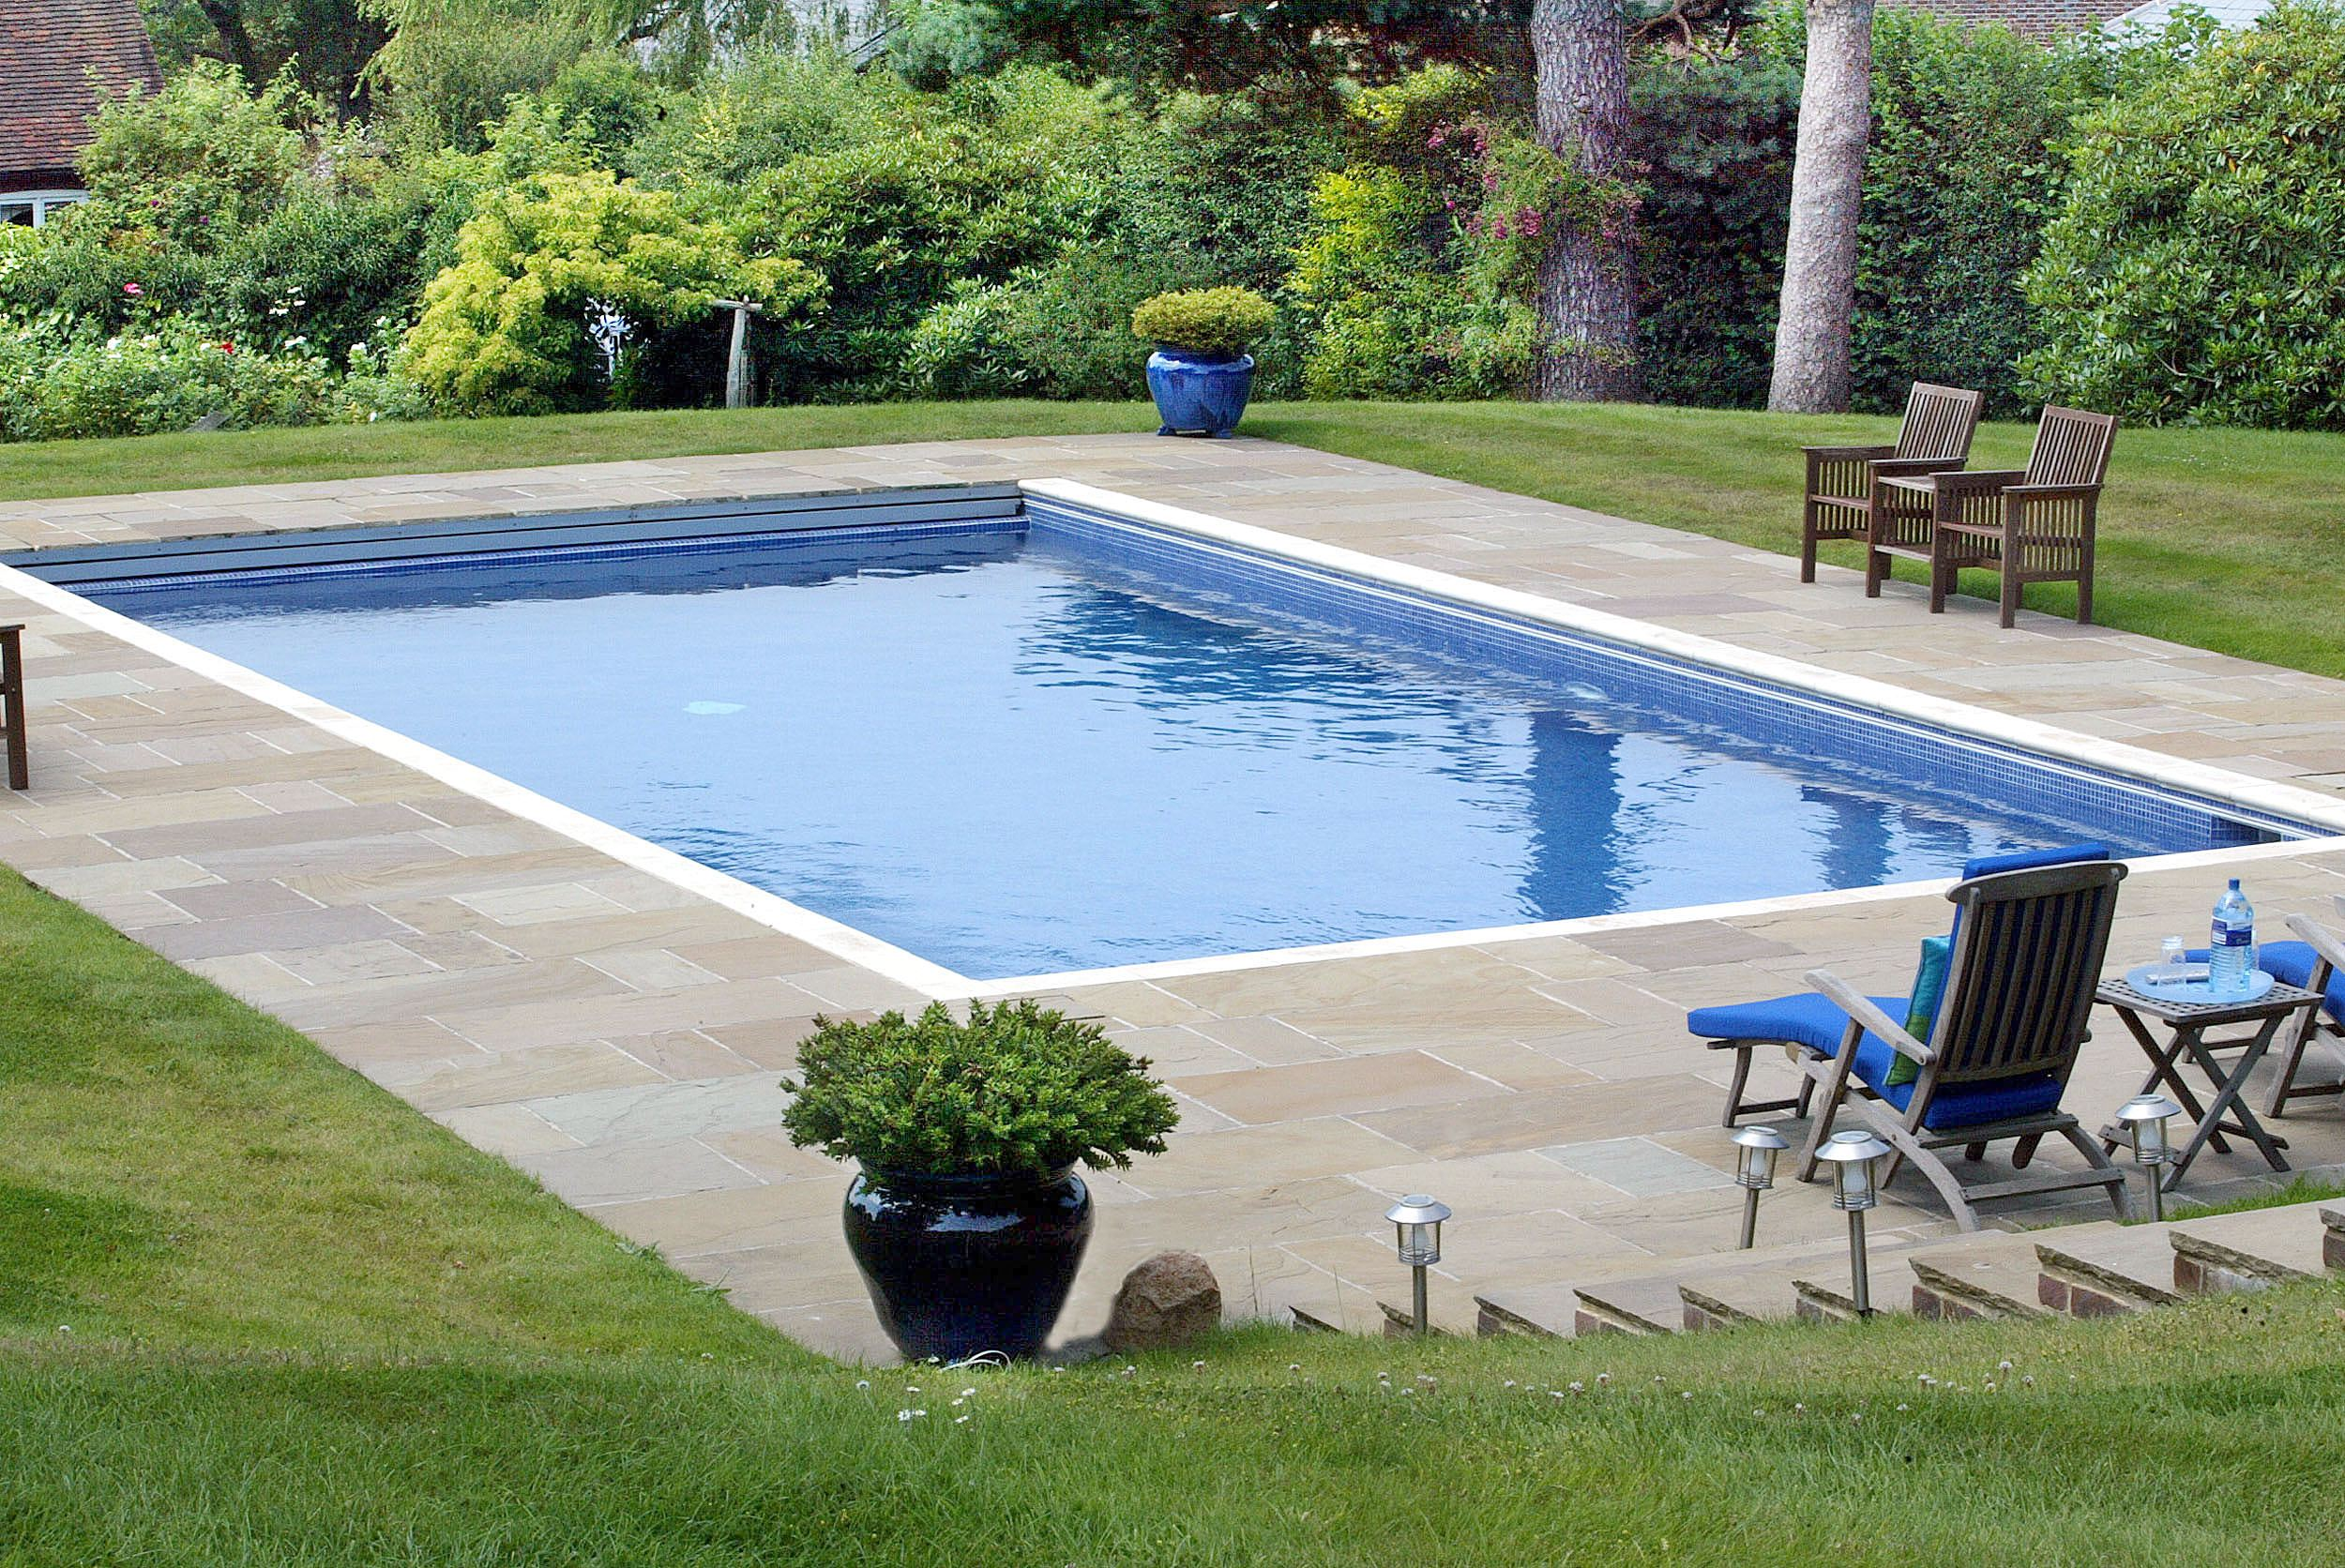 Comment bien integrer votre piscine a votre jardin le for Piscine jardin rectangle